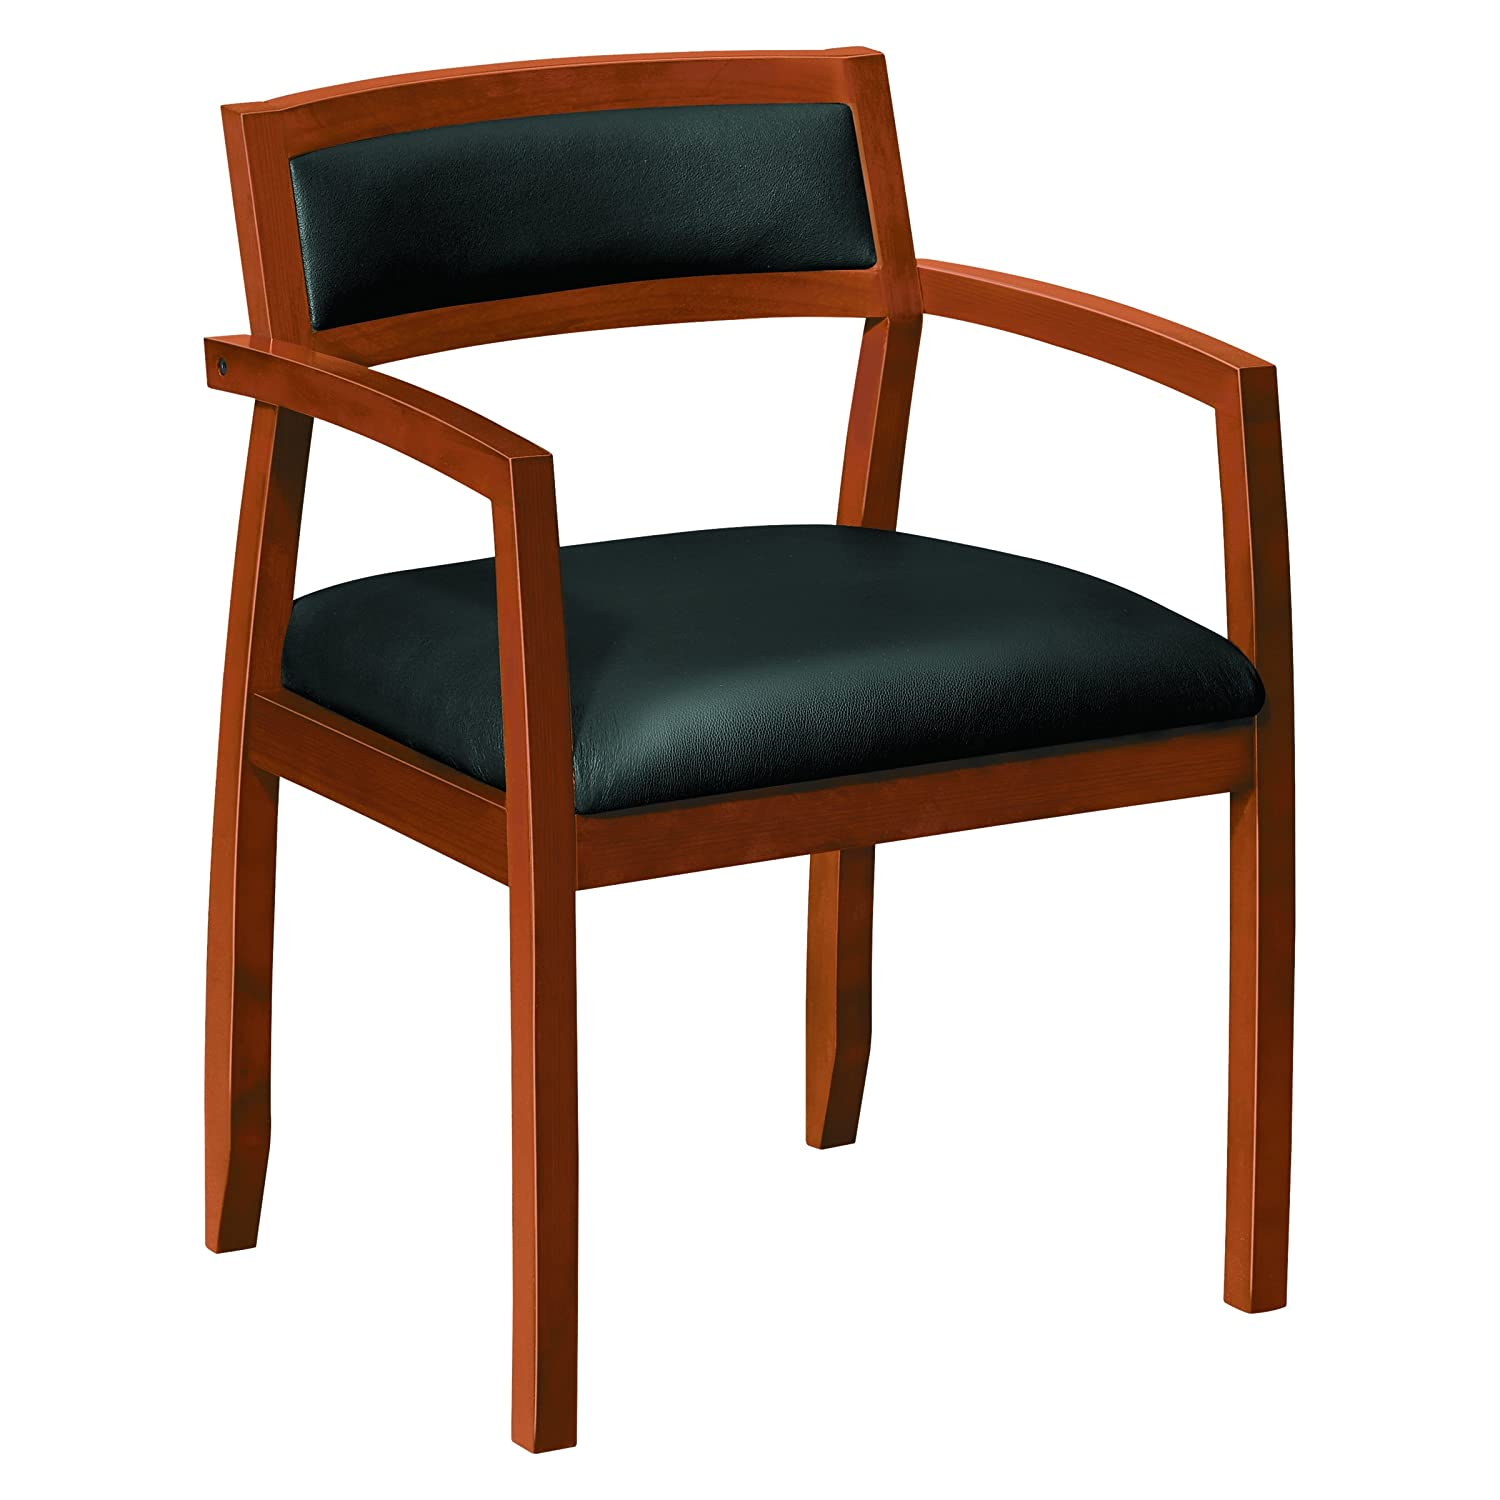 N sb11 topflight wood guest chair leather seated guest chair with arms office furniture mahogany finish vl852 kitchen dining